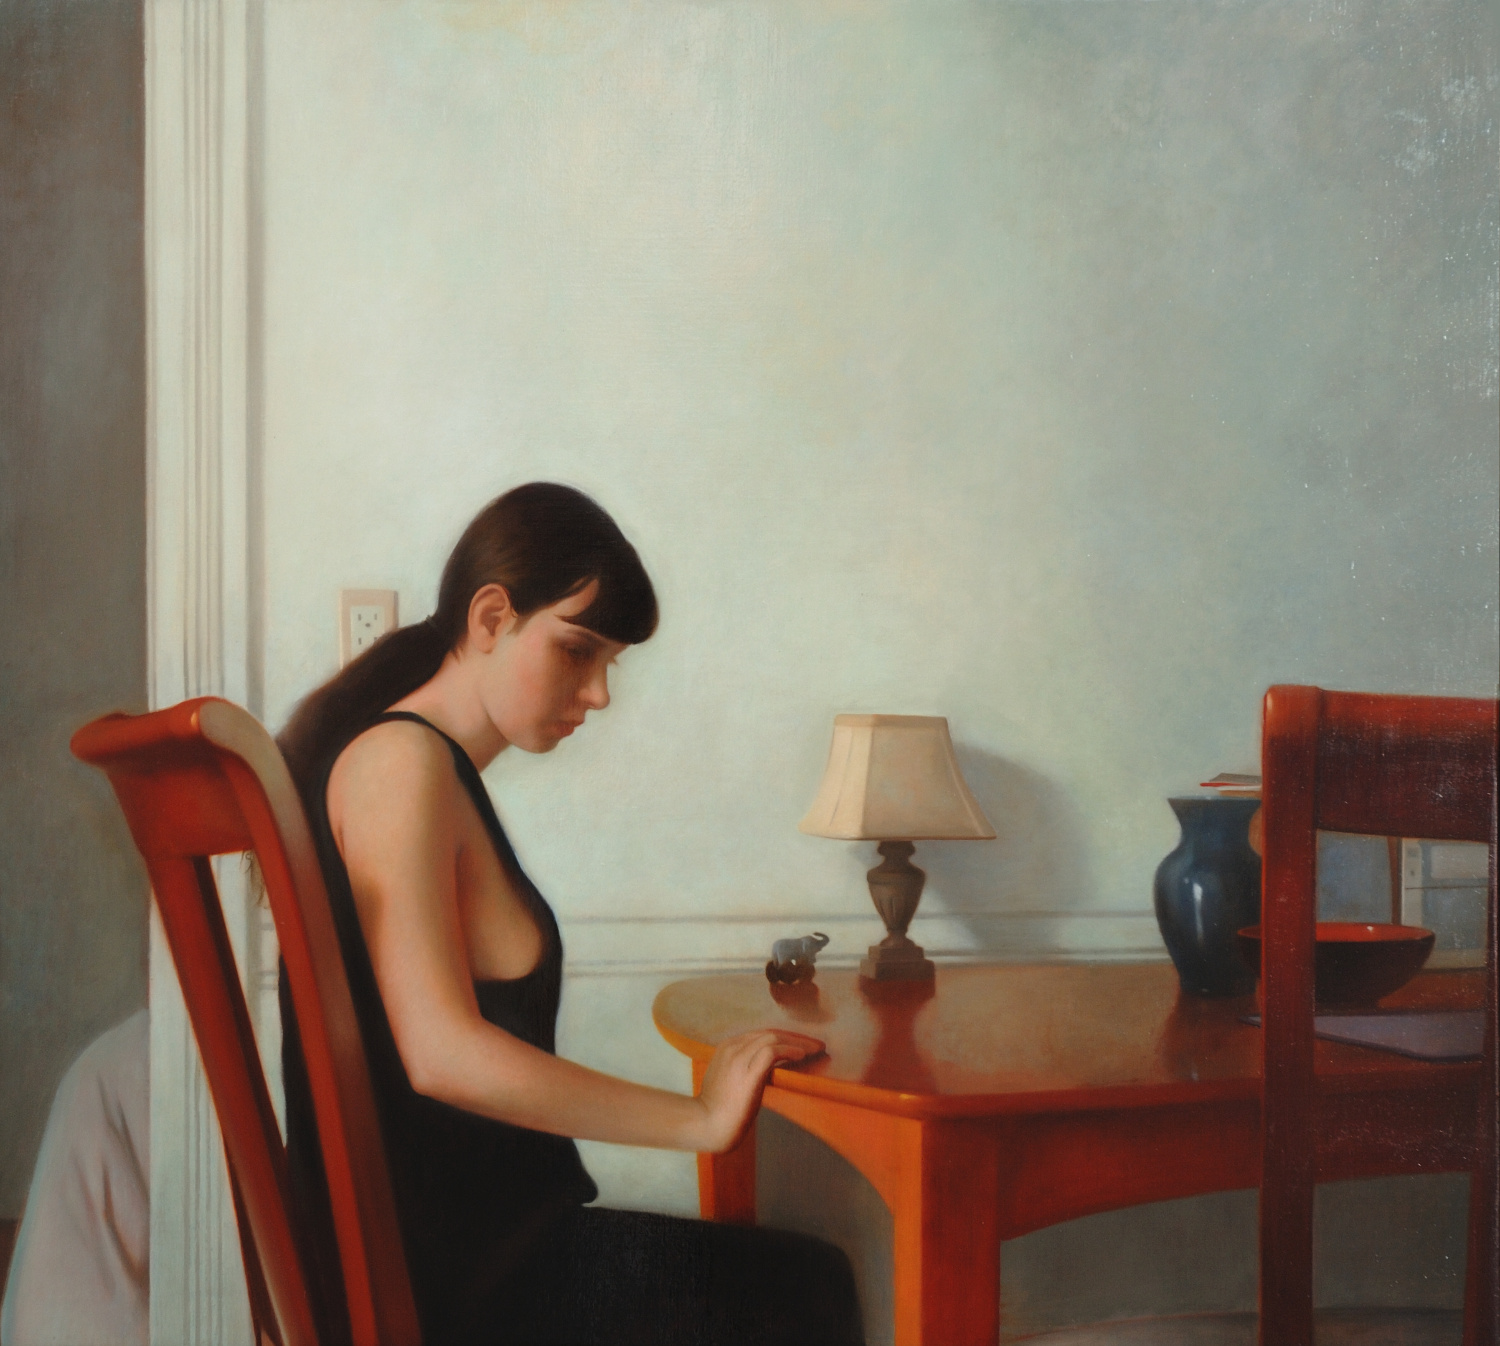 Transposition , 2007, Oil on linen, 34 x 38 inches, Private collection